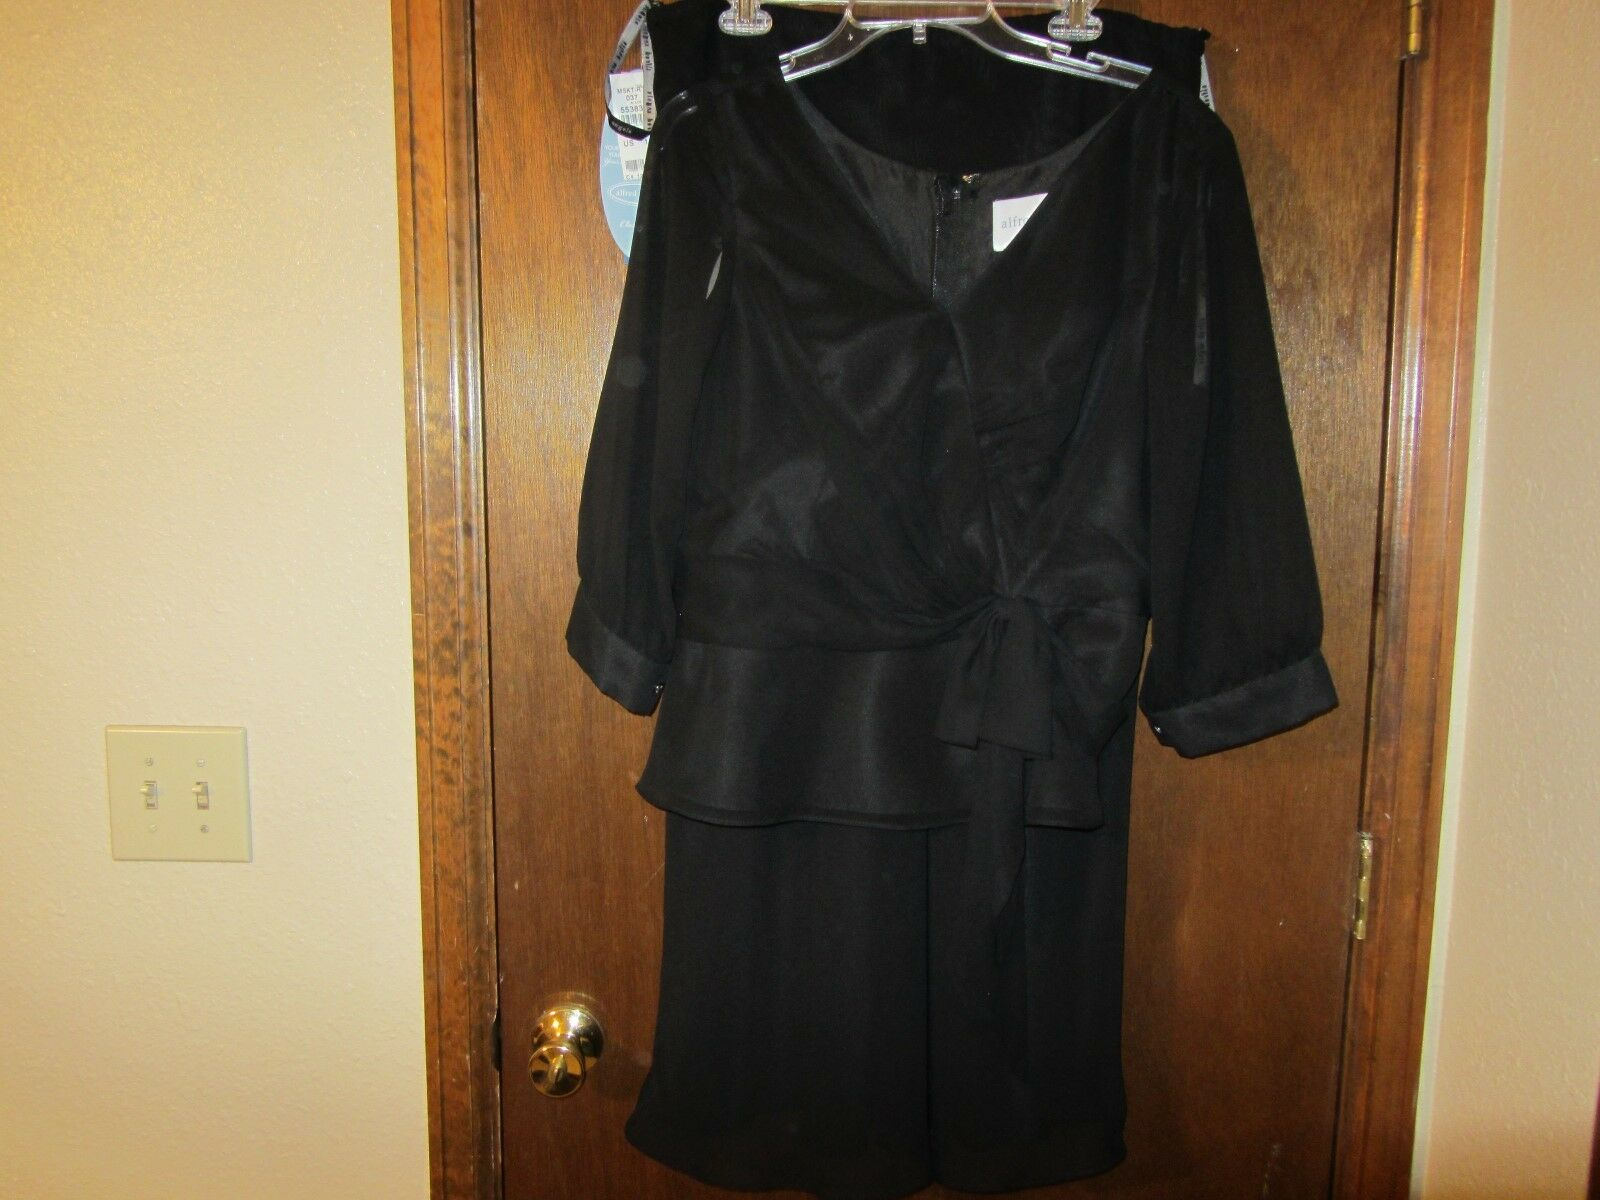 NWT - ALFRED ANGELO - 2 Piece - Black - Size 14 - Formal,Busines,Mother of Bride